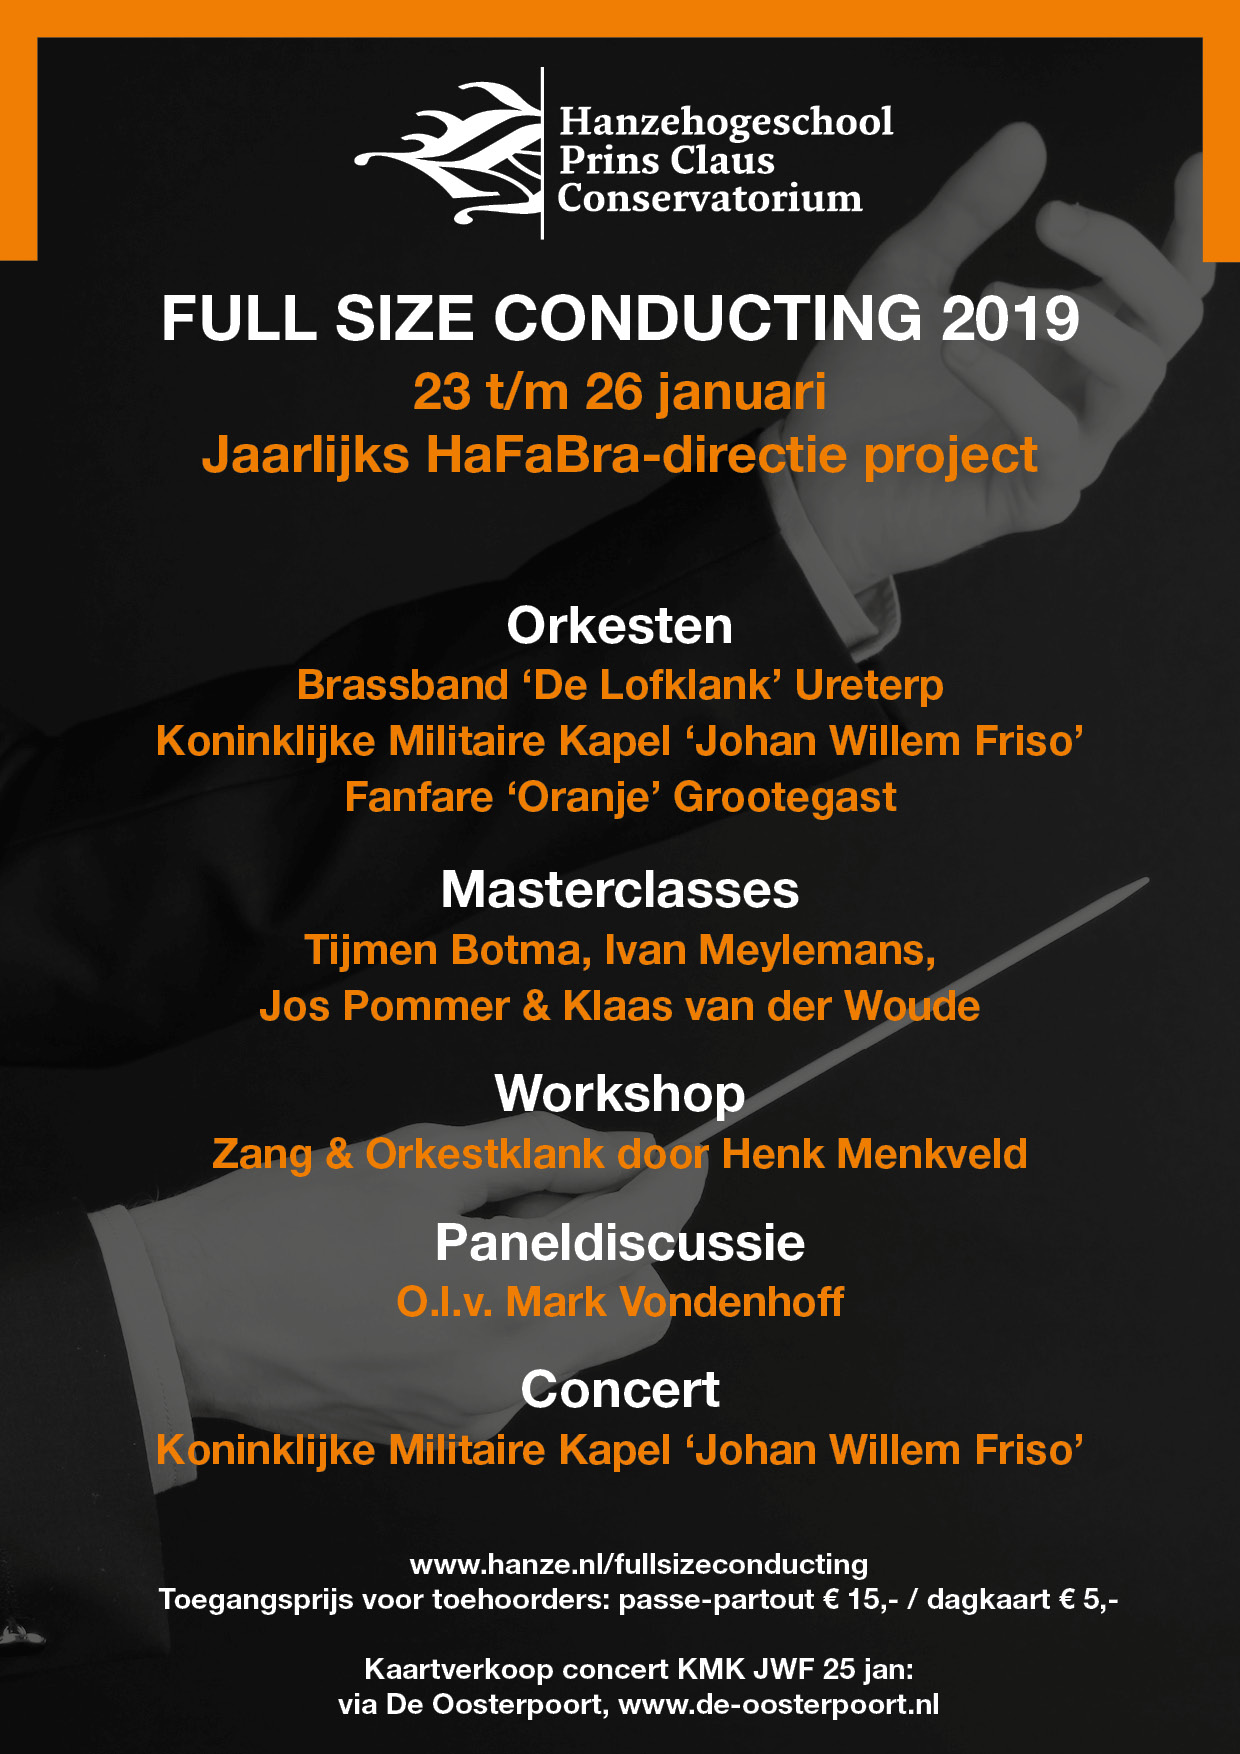 Full Size Conducting